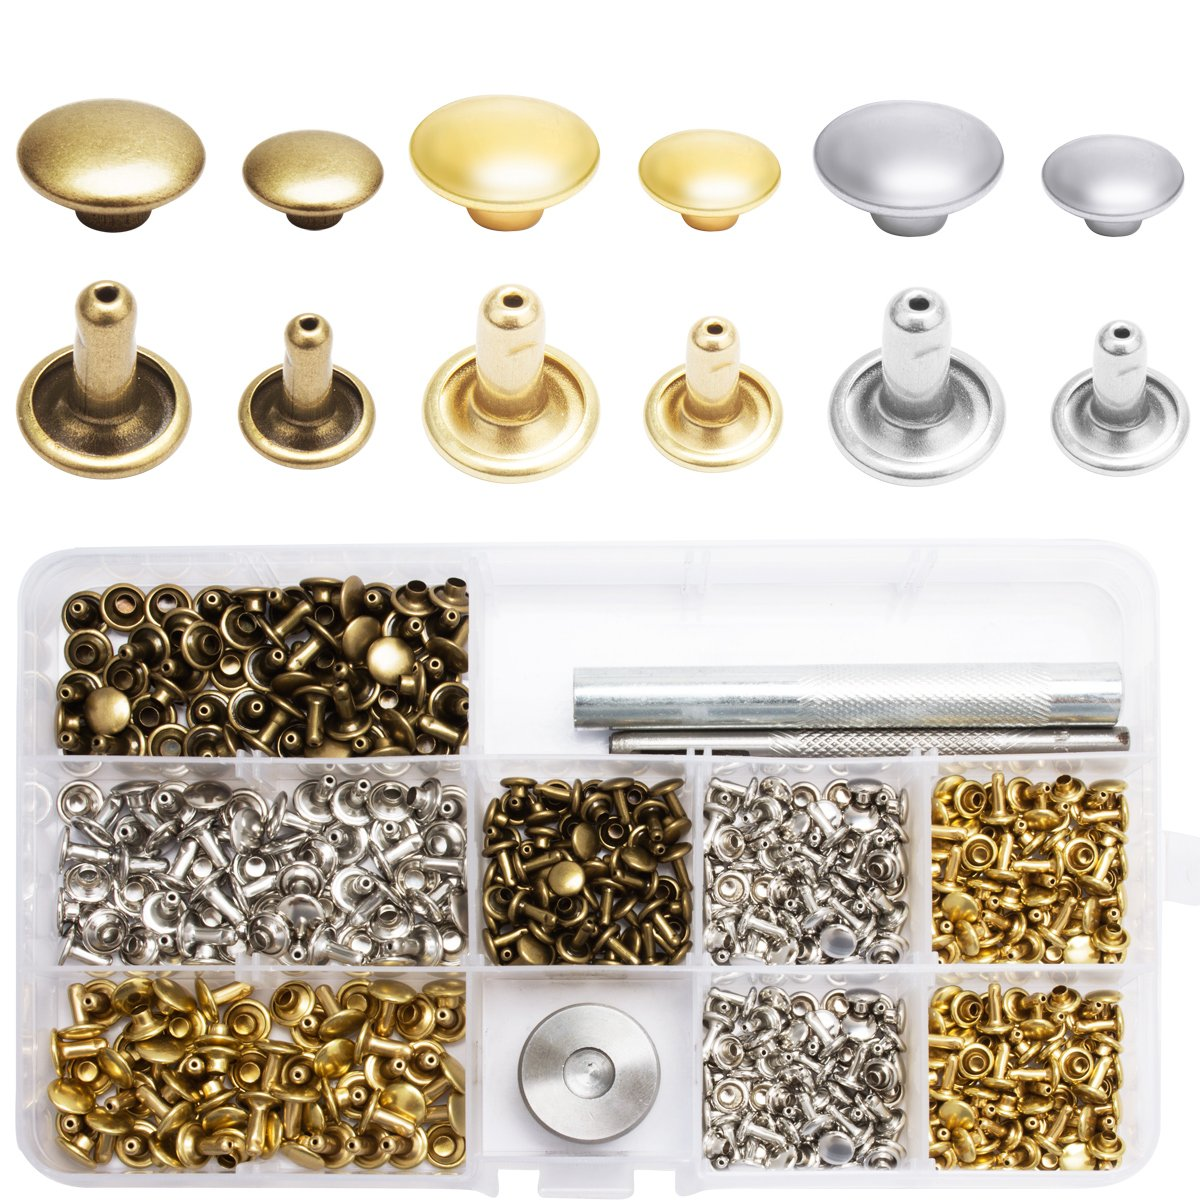 3 Colors and 2 Sizes 180 Set 2 Sizes Tubular Metal Studs with 3 Pieces Fixing Tool Rivets Replacement Cavetee Leather Rivets Double Cap Rivet Gold, Silver and Bronze DIY Leather Craft Tools